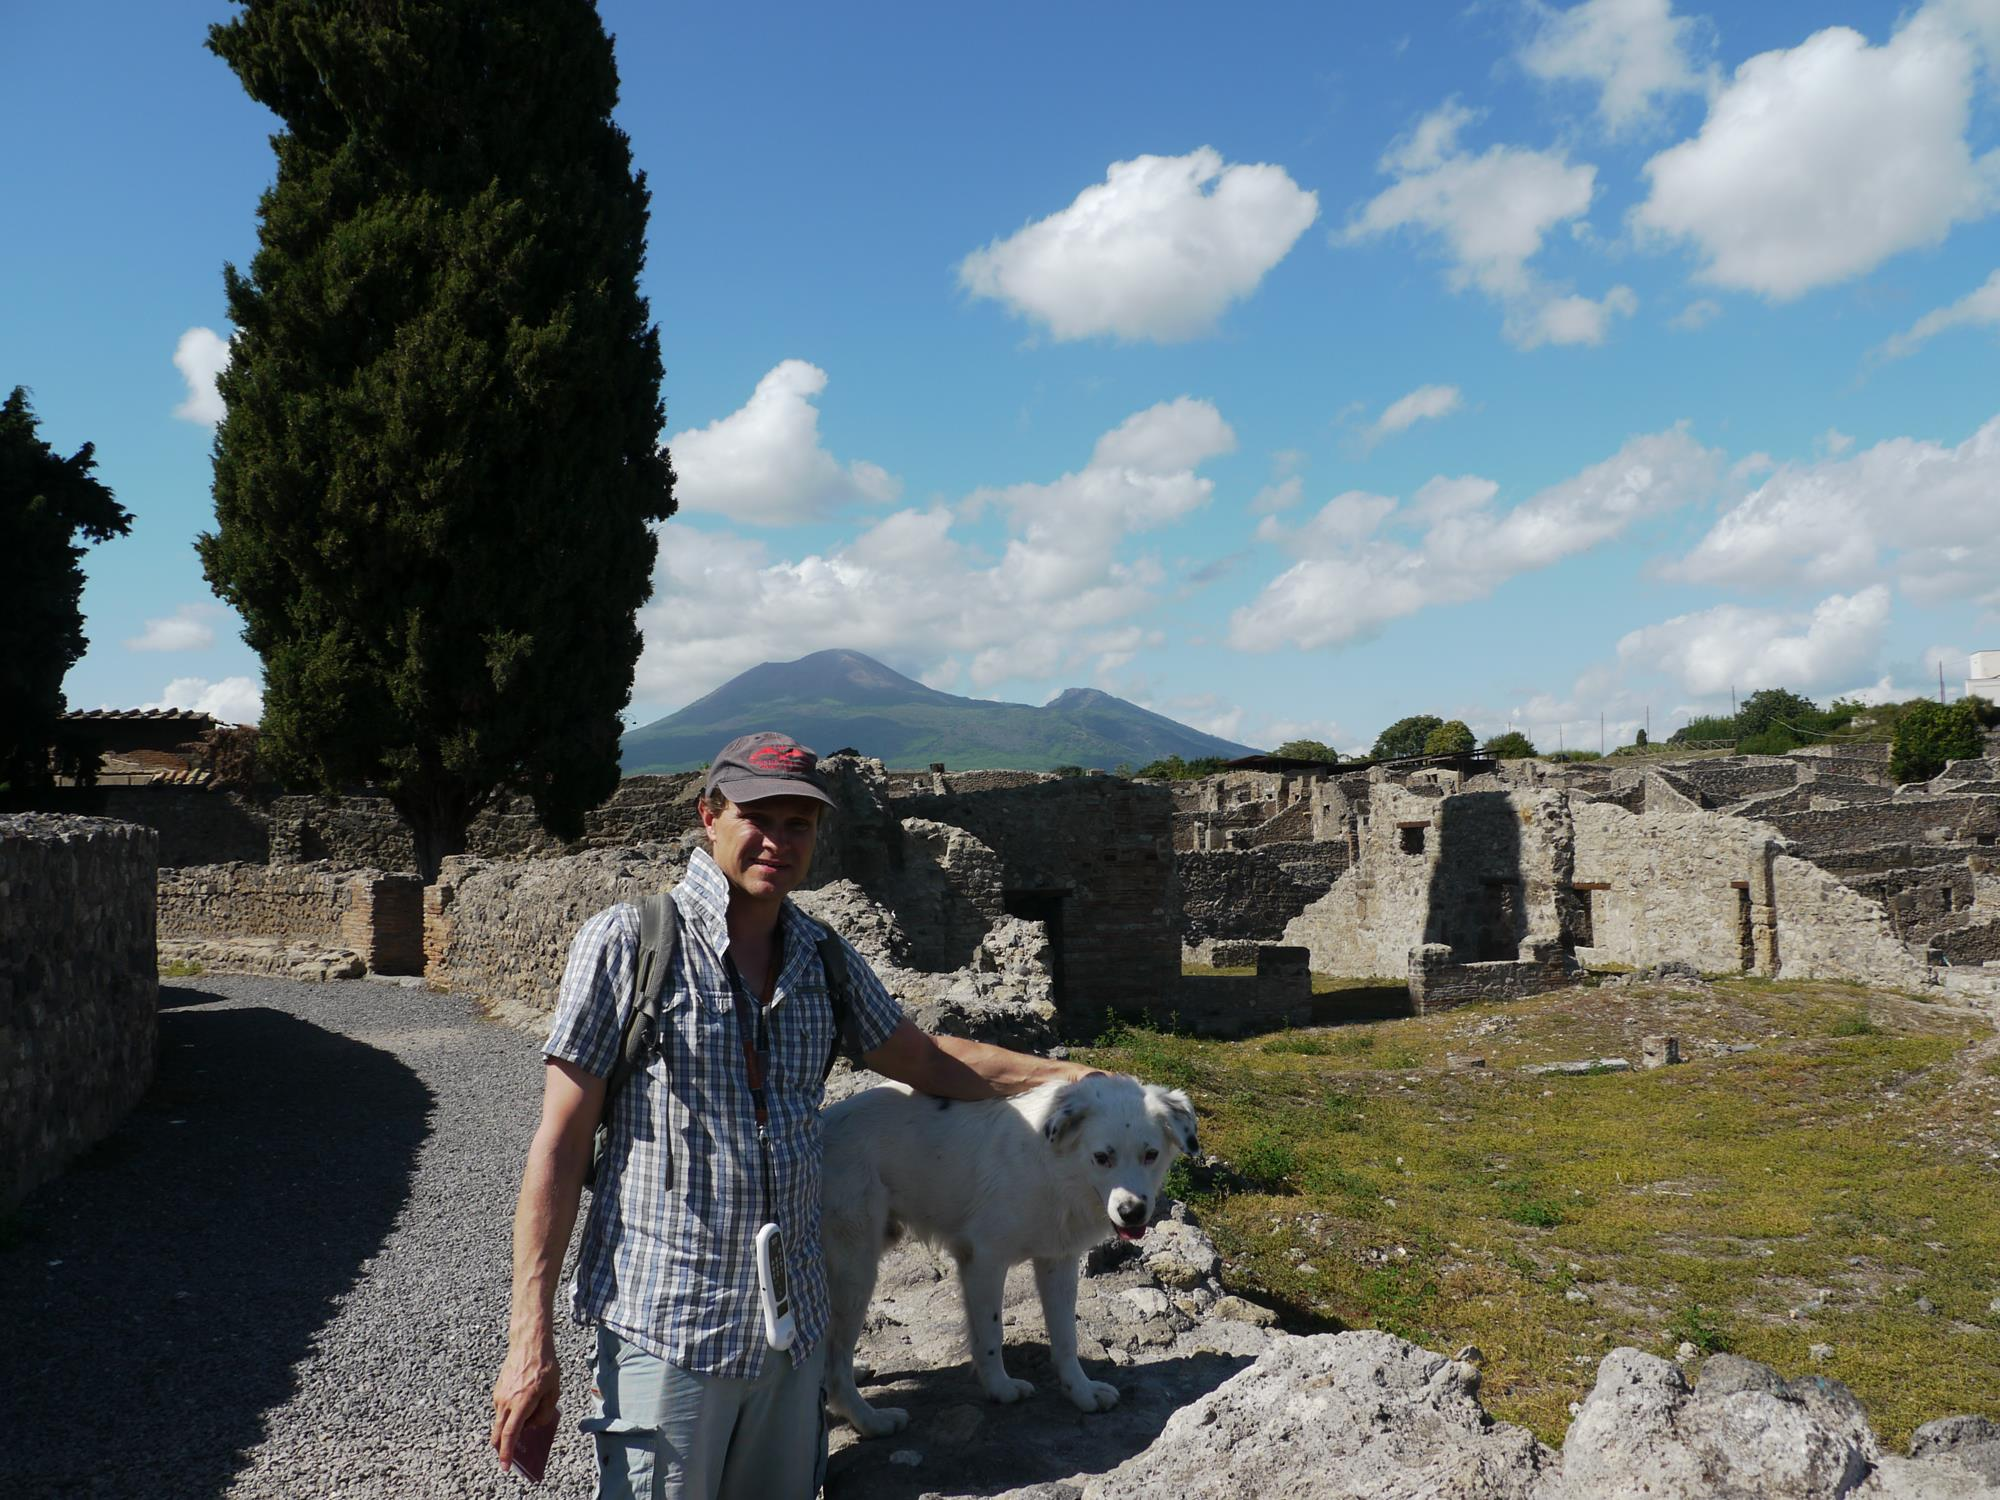 The ruins of Pompeii and one of many resident stray dogs